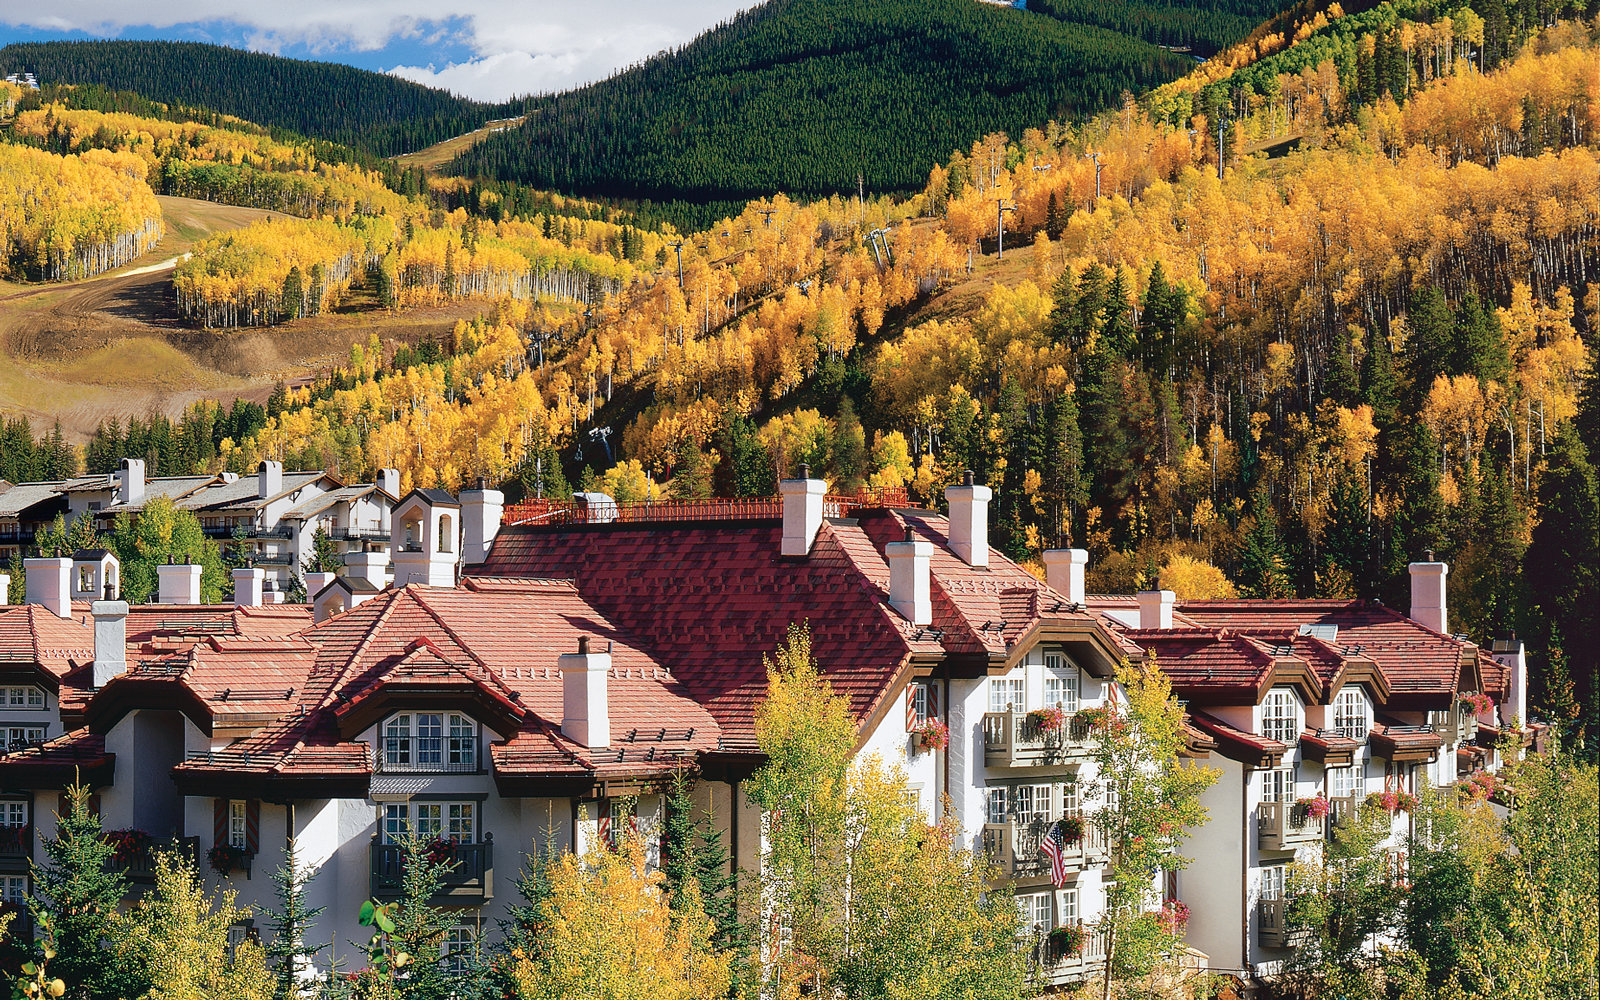 No. 4: Sonnenalp Hotel,  Vail,  Colorado